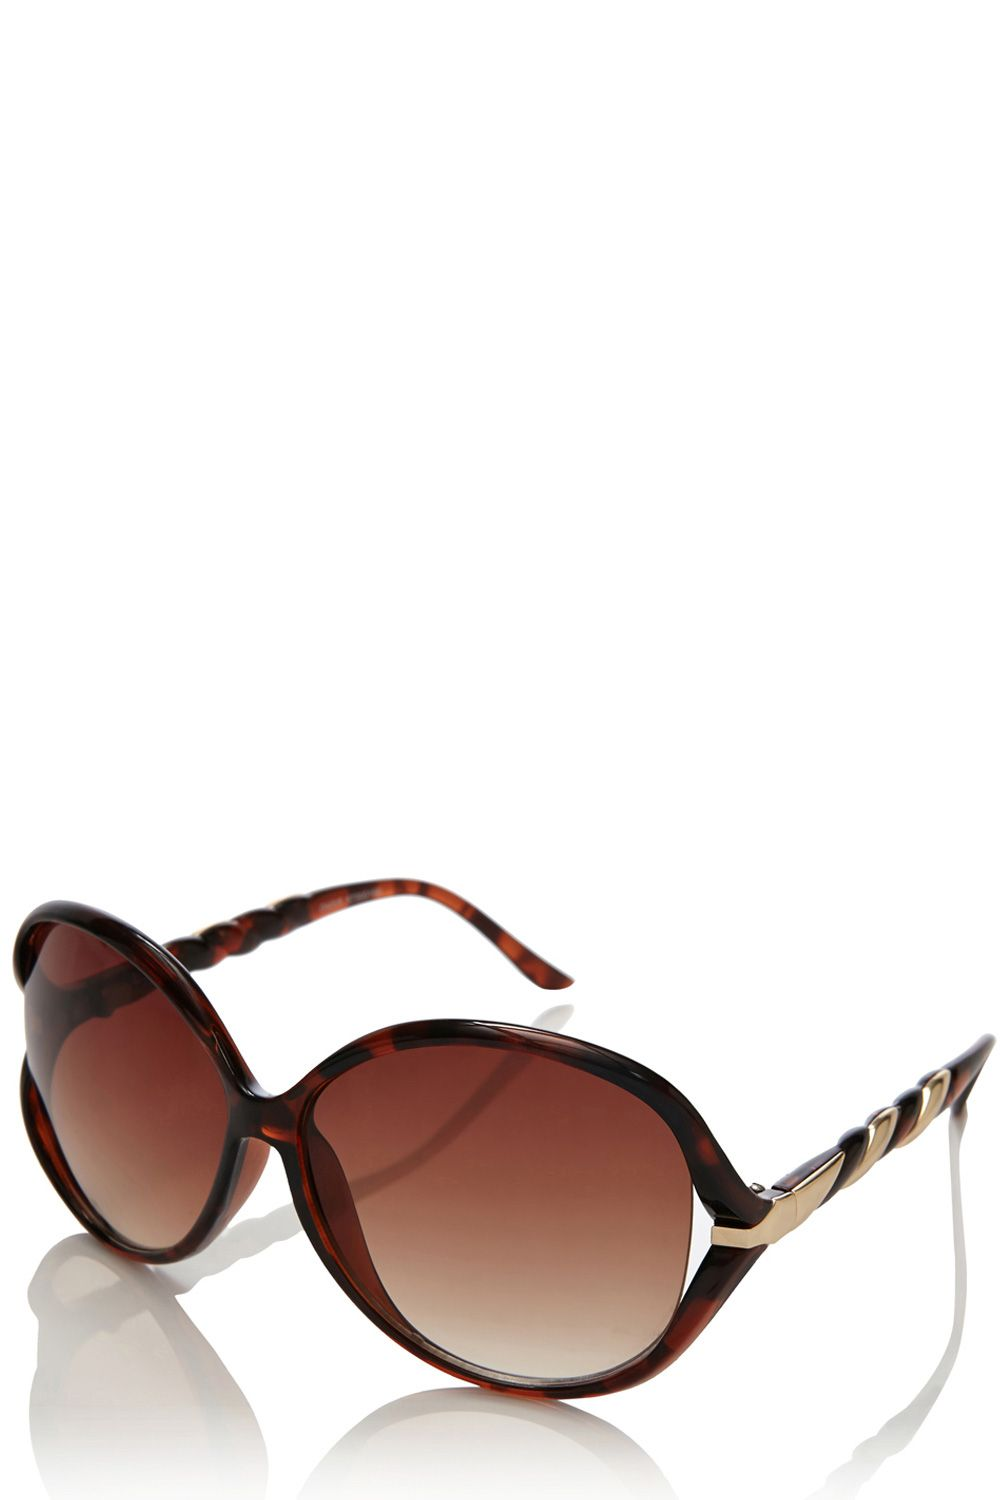 Twisted arm sunglasses